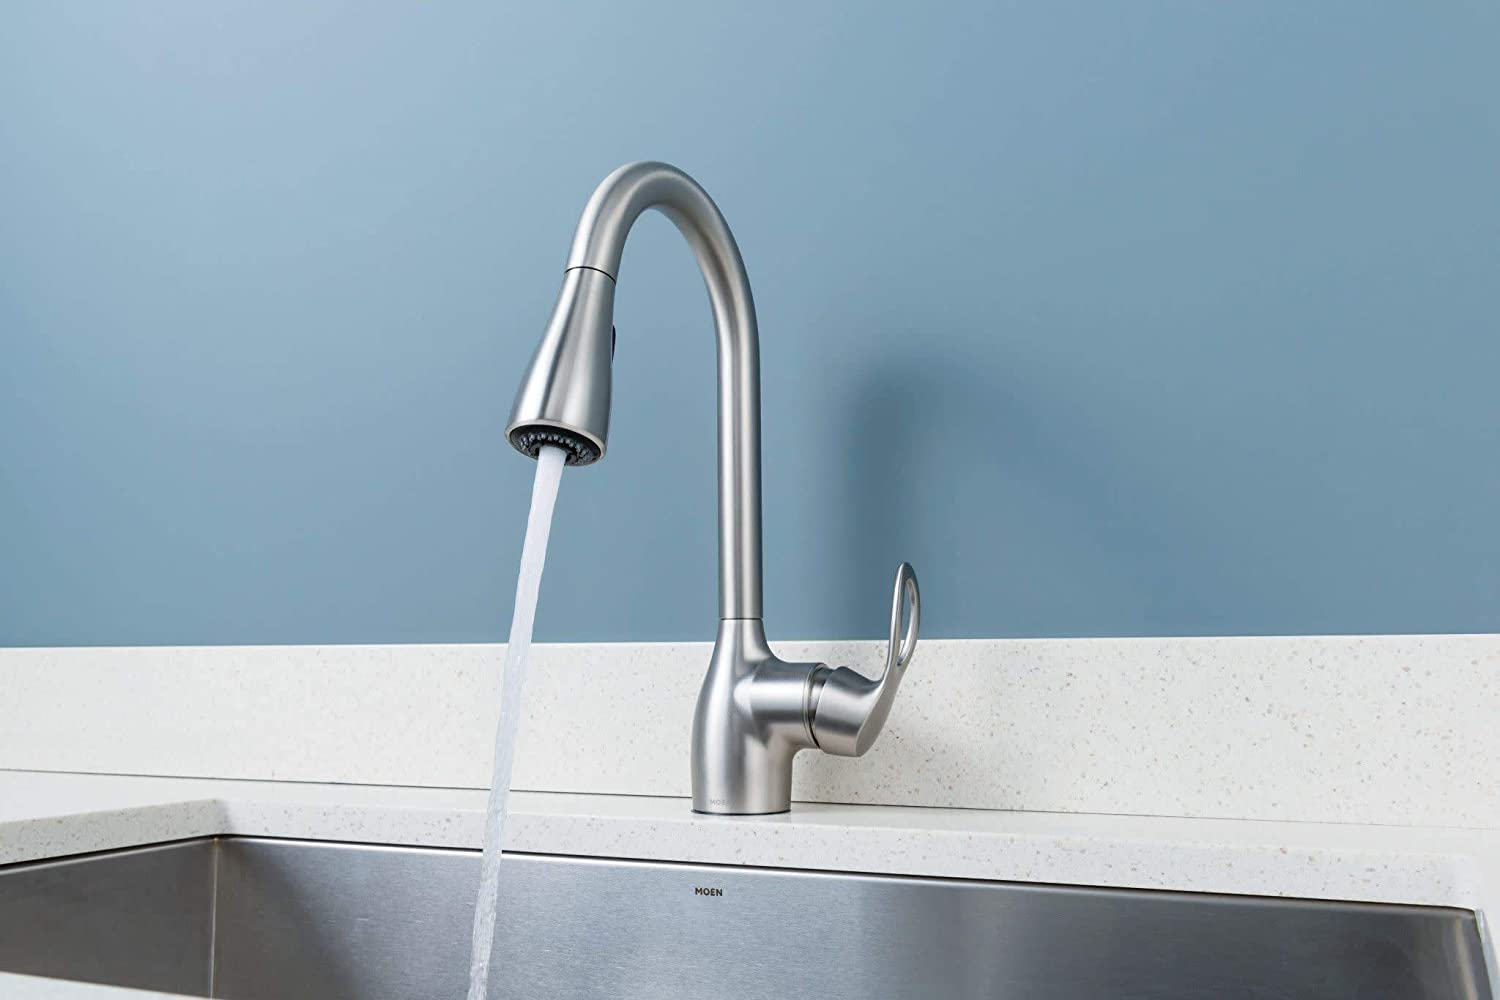 Moen CA87011SRS Single Handle Kitchen Faucet with Pullout Spray from the  Kleo Collection, Spot Resist Stainless